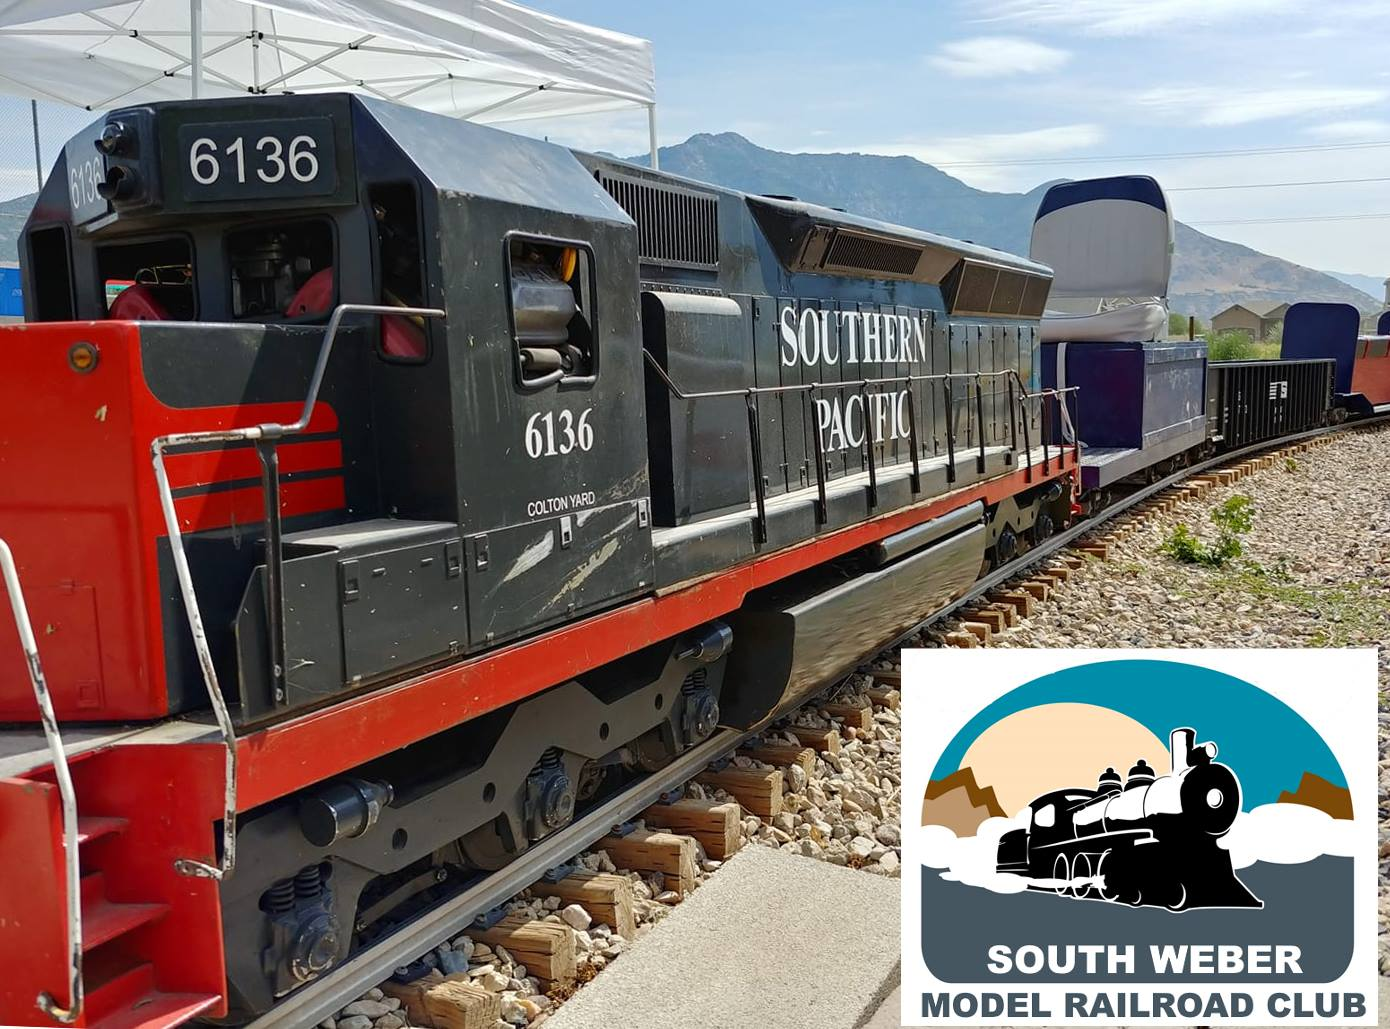 South Weber Railroad Club's leading engine, the Southern Pacific. Courtesy of the South Weber Railroad Club.